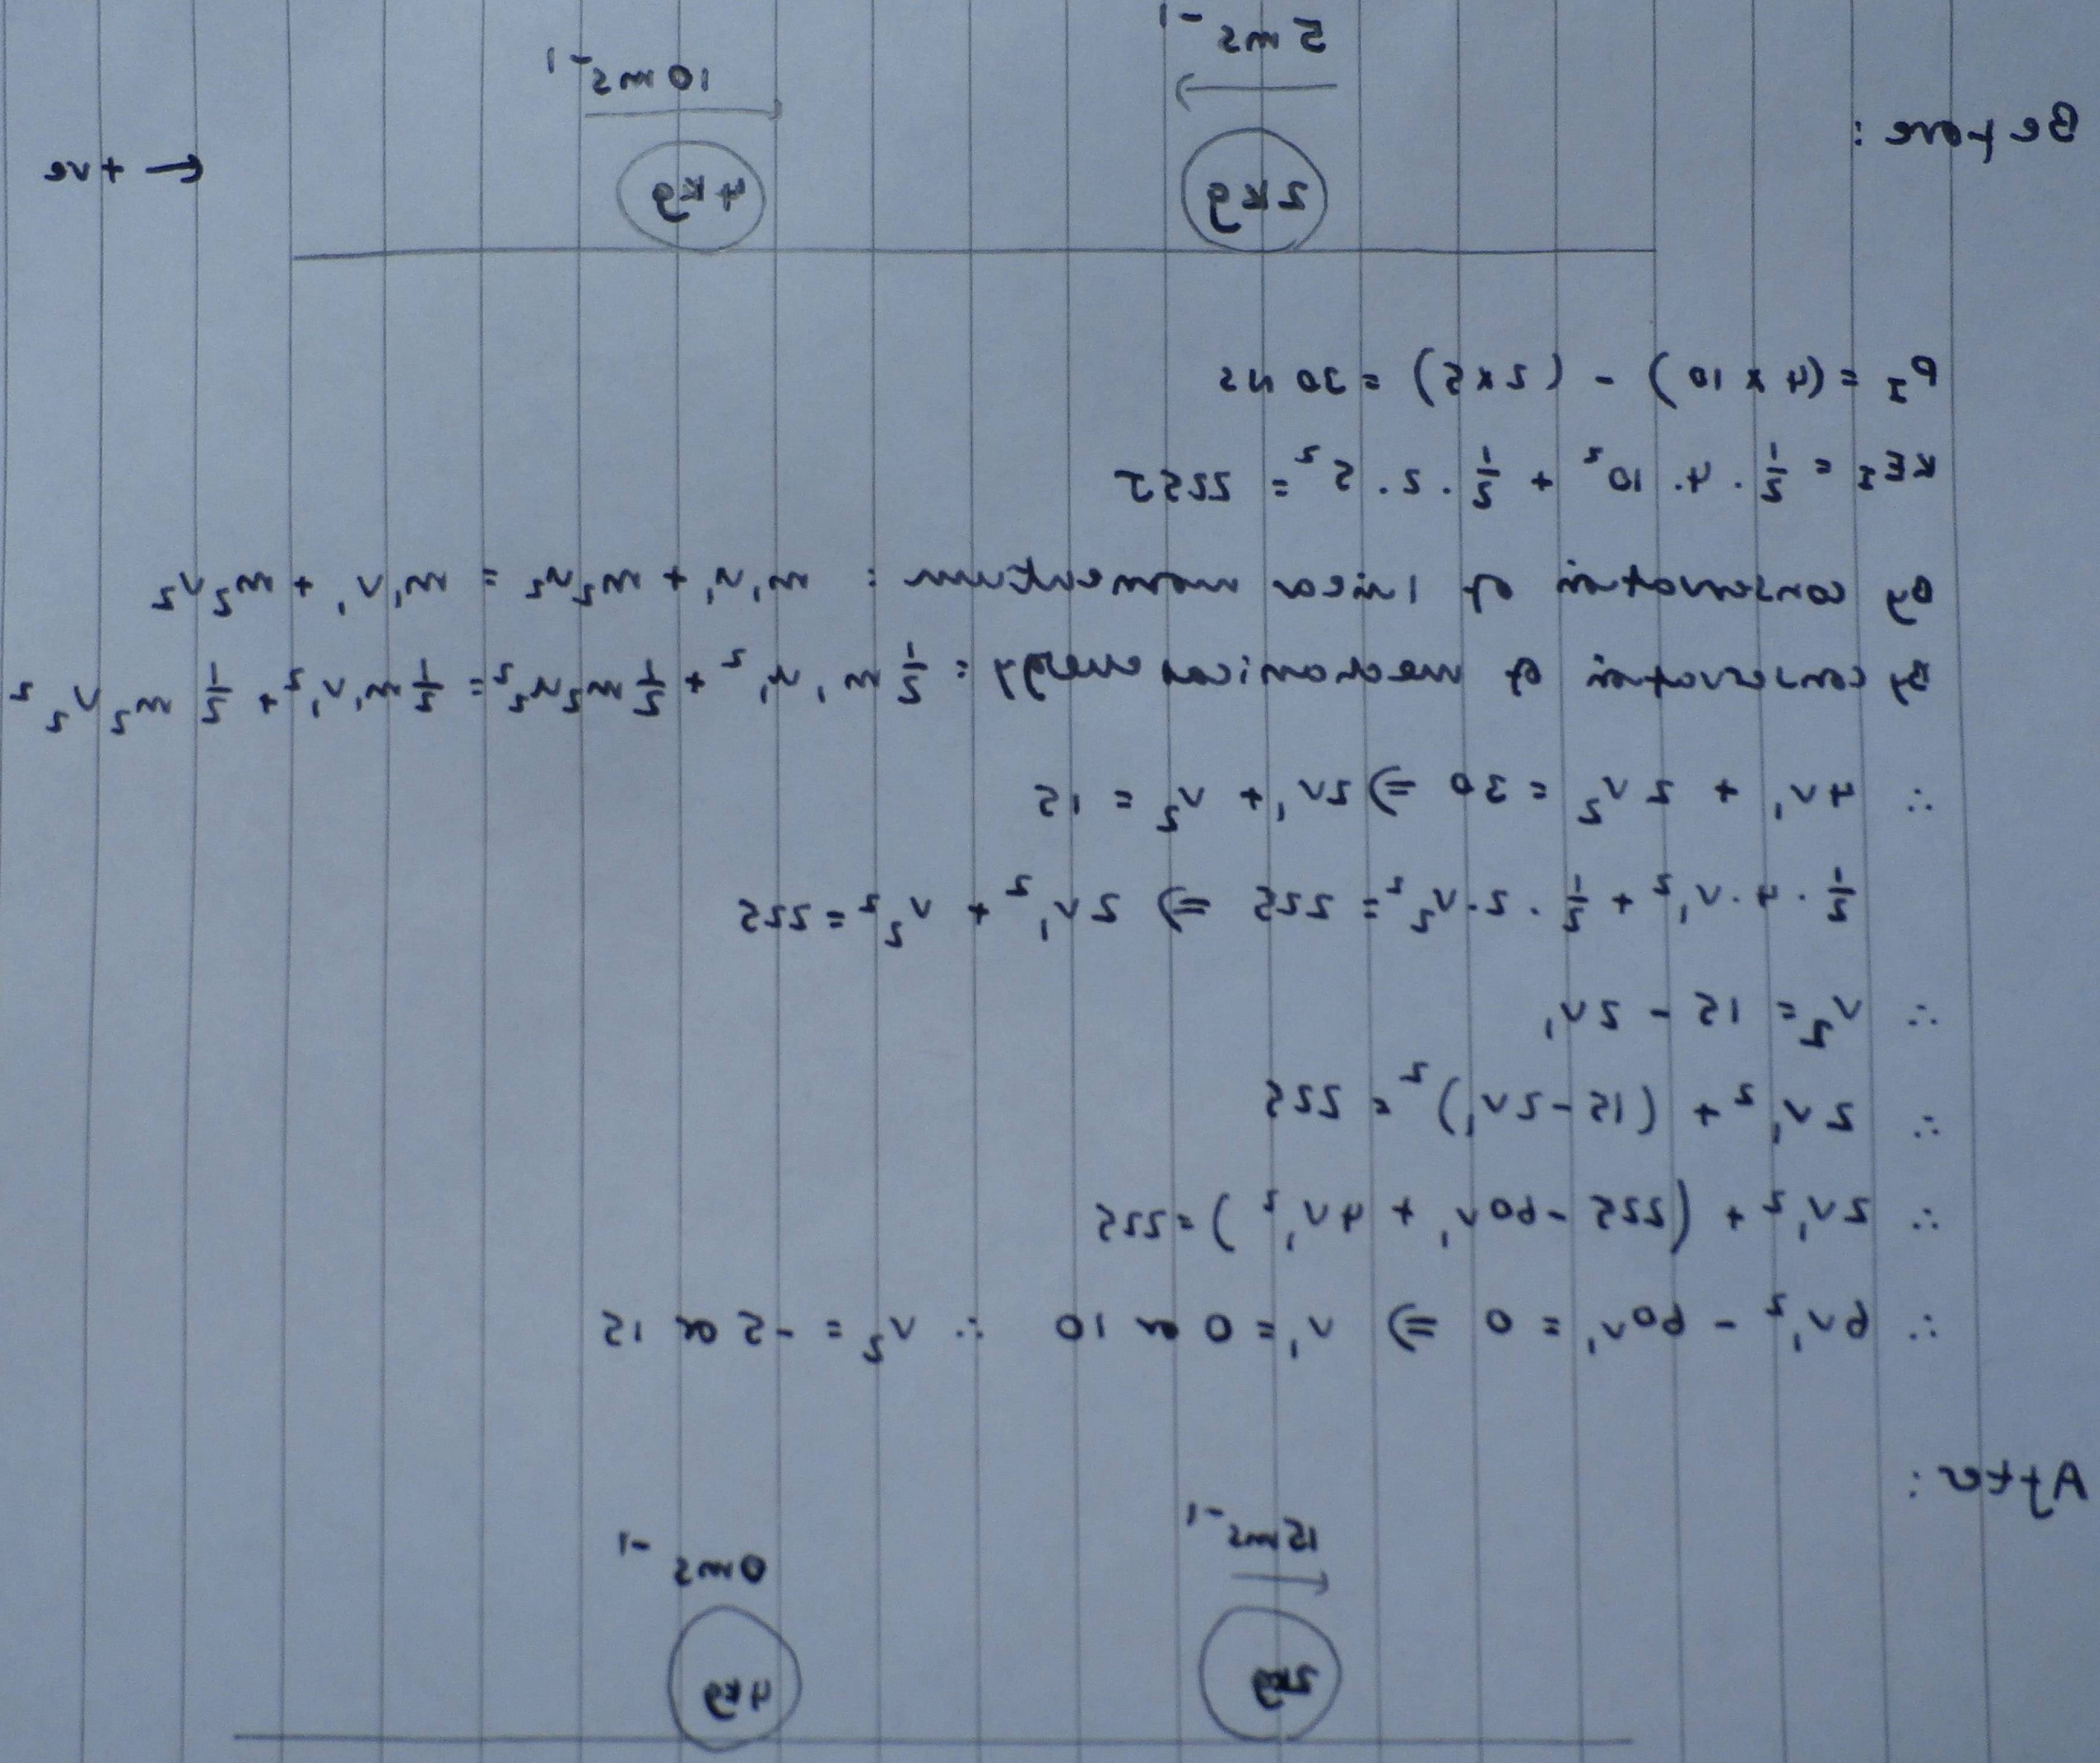 Angular Momentum Vectors Drawing: Conservation Of Momentum And Mechanical Energy In Different Reference Frames